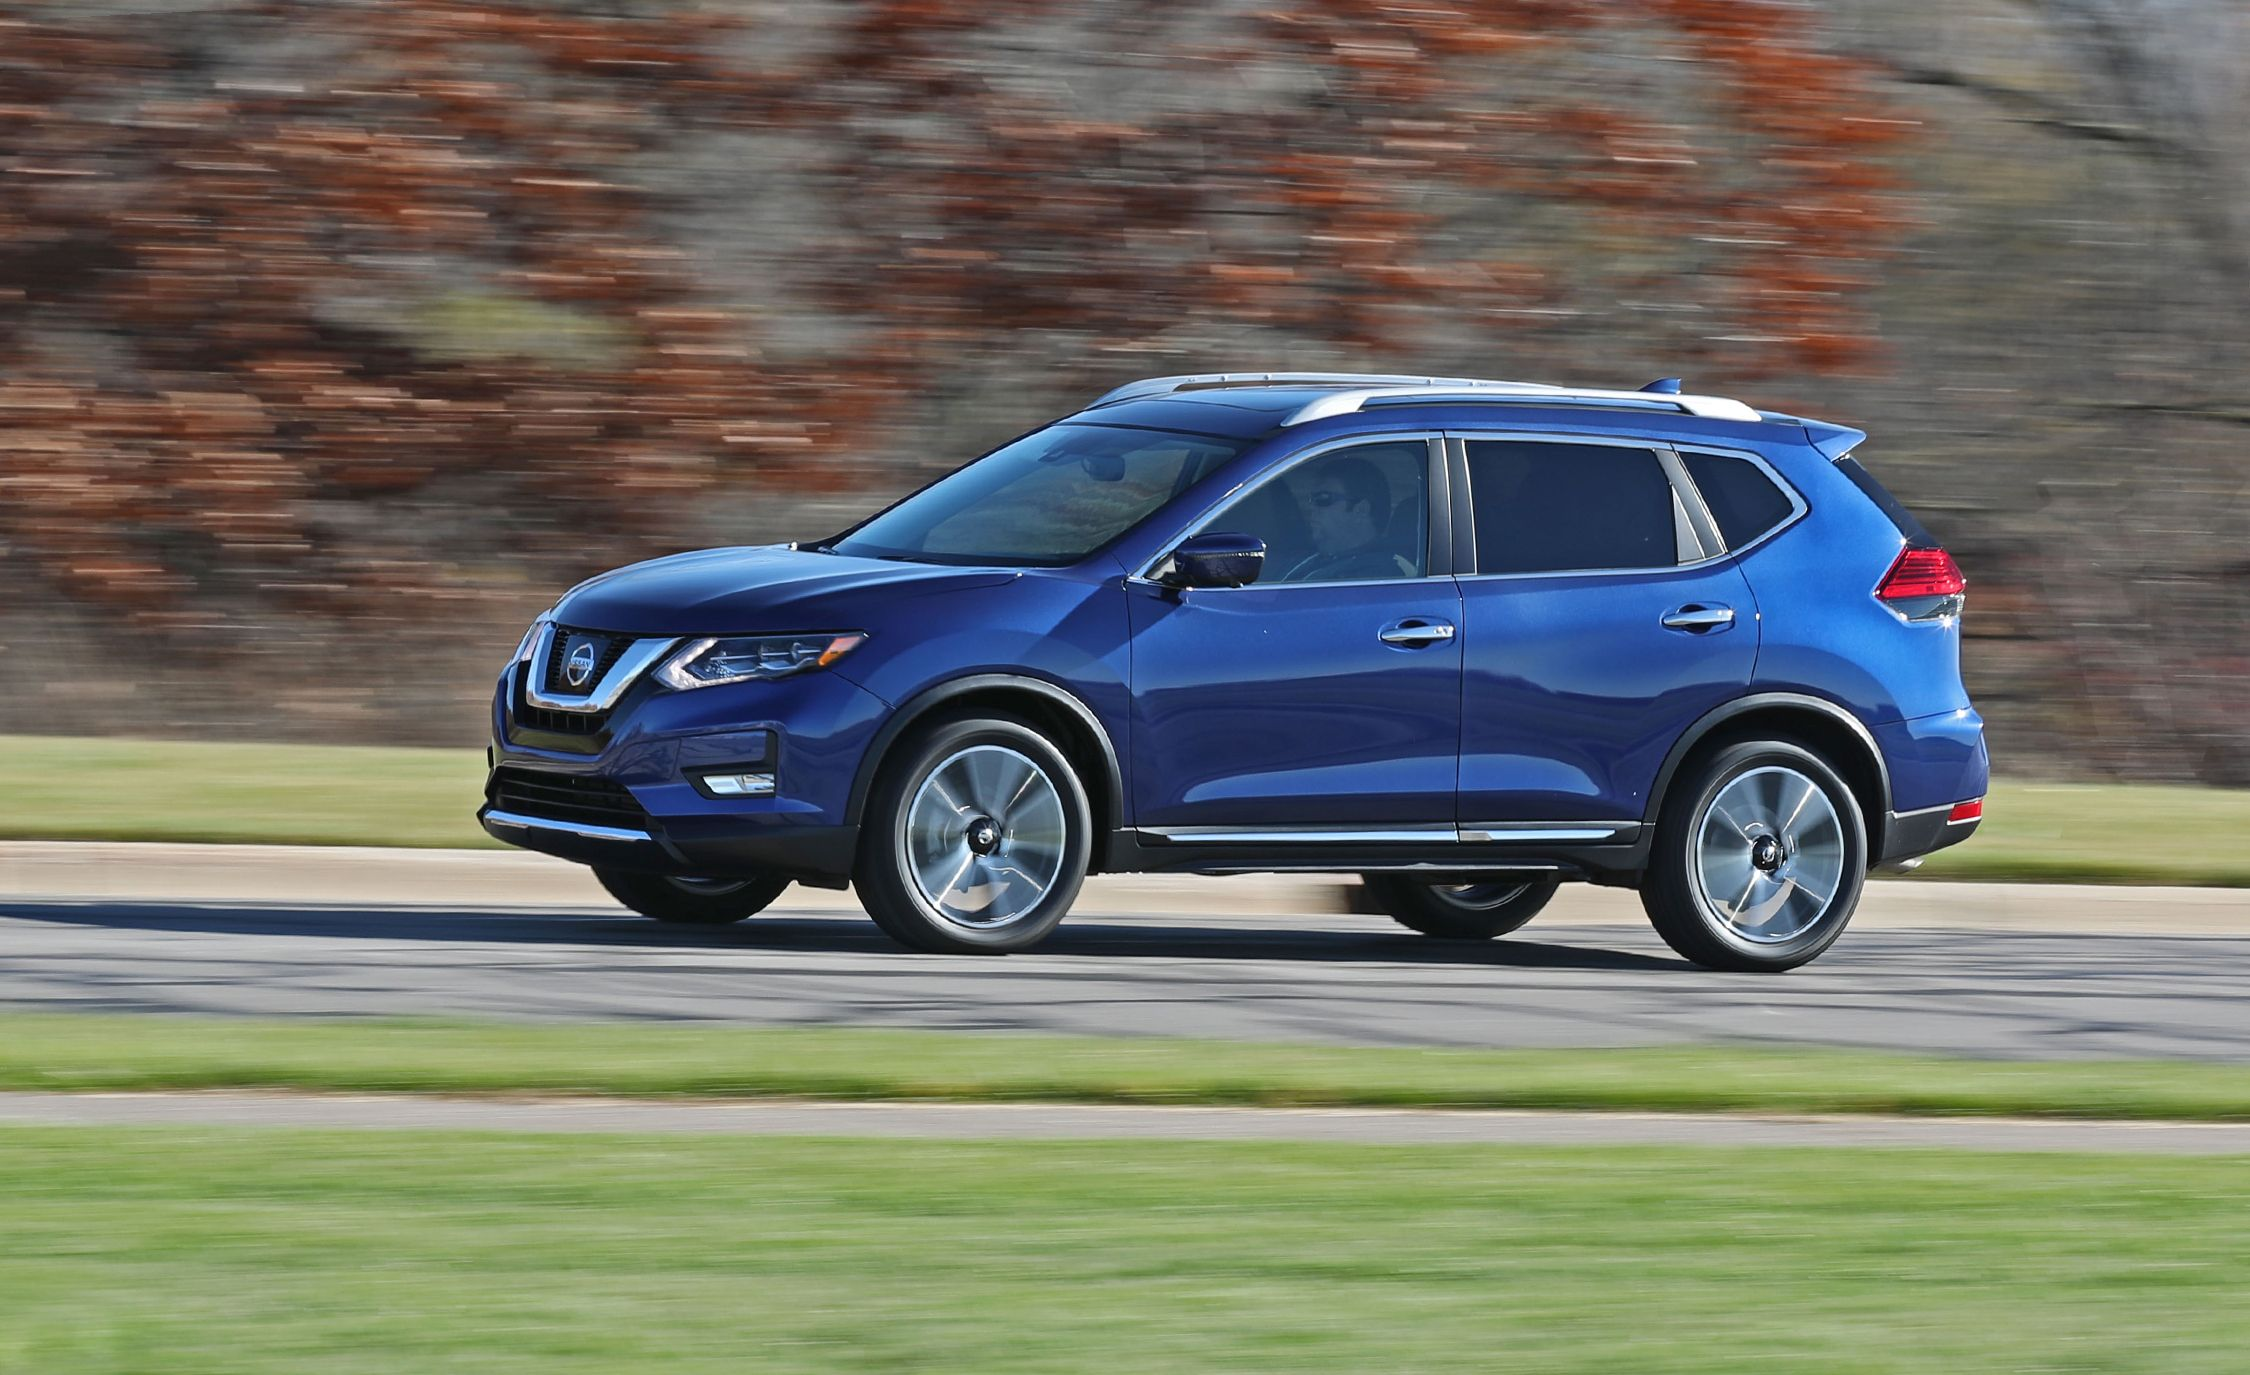 2018-nissan-rogue-in-depth-model-review-car-and-driver-photo-695725-s-original.jpg?crop=1xw:1xh;center,center&resize=900:*